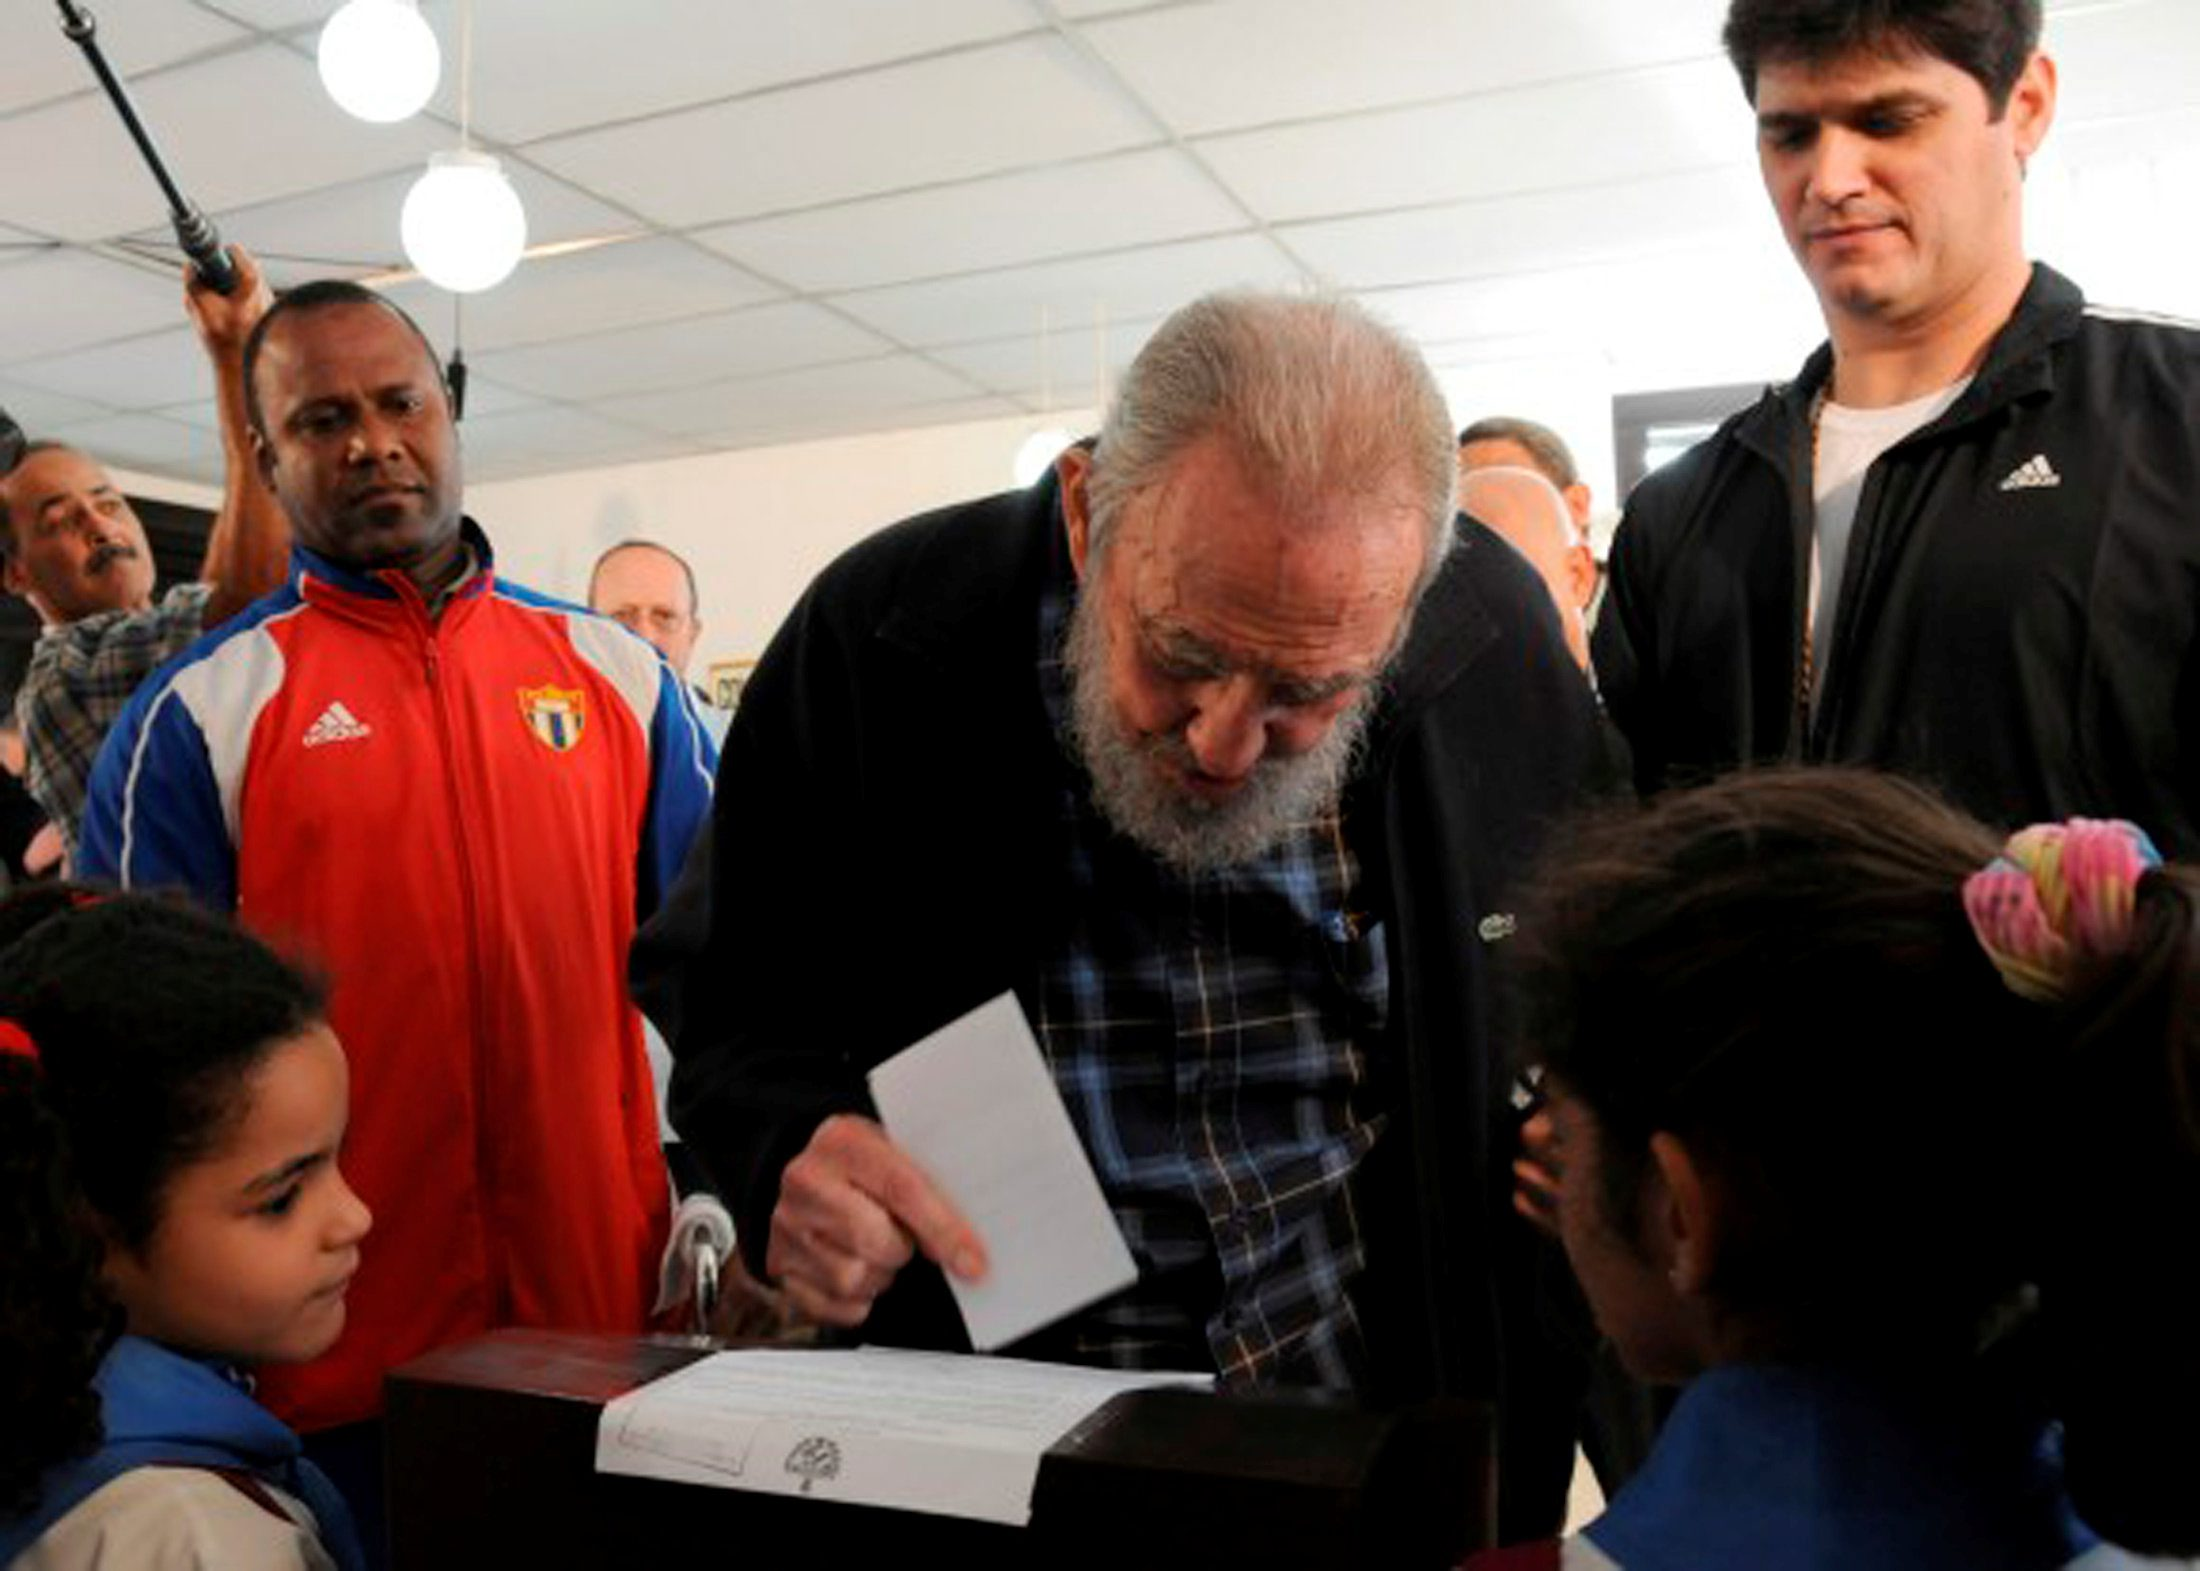 Former Cuban leader Fidel Castro (C) casts his ballot at a polling station in Havana in this February 3, 2013 file photo provided by Cubadebate. REUTERS/Ismael Francisco/Cubadebate/Handout/File Photo       ATTENTION EDITORS - THIS IMAGE WAS PROVIDED BY A THIRD PARTY. EDITORIAL USE ONLY.